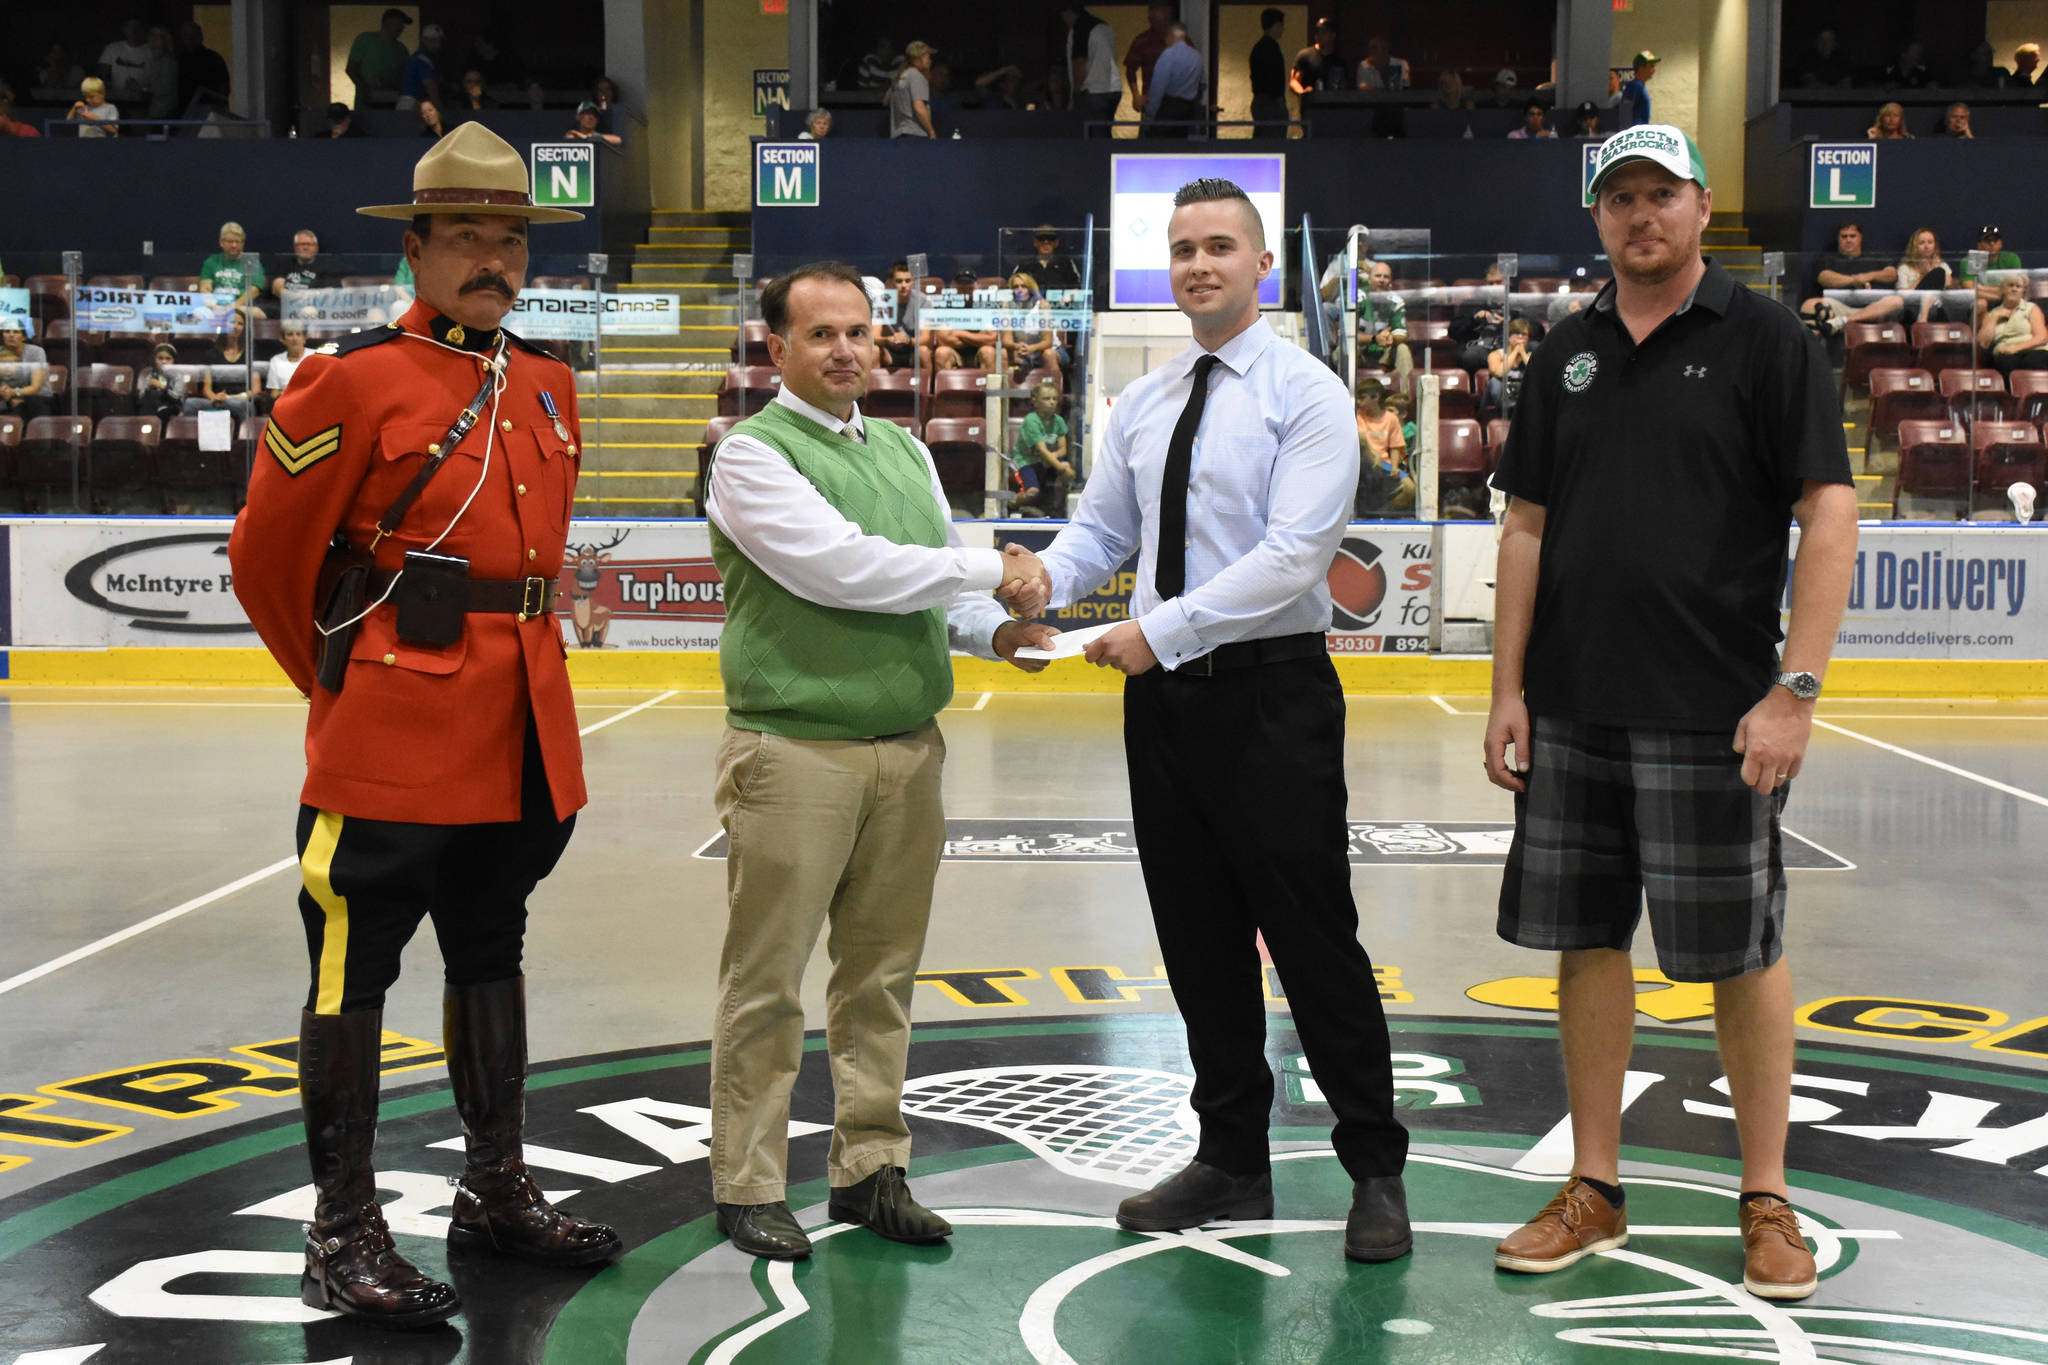 Tanner Stevenson, centre right, is presented with the inaugural Const. Sarah Beckett Memorial Scholarship by Colin Plant (centre left), Victoria Shamrocks operations manager Jason Sperling (far right), and Cpl. Heinz Krauss (far left) on Aug. 13. (Photo by Jen Powley/Victoria Shamrocks)